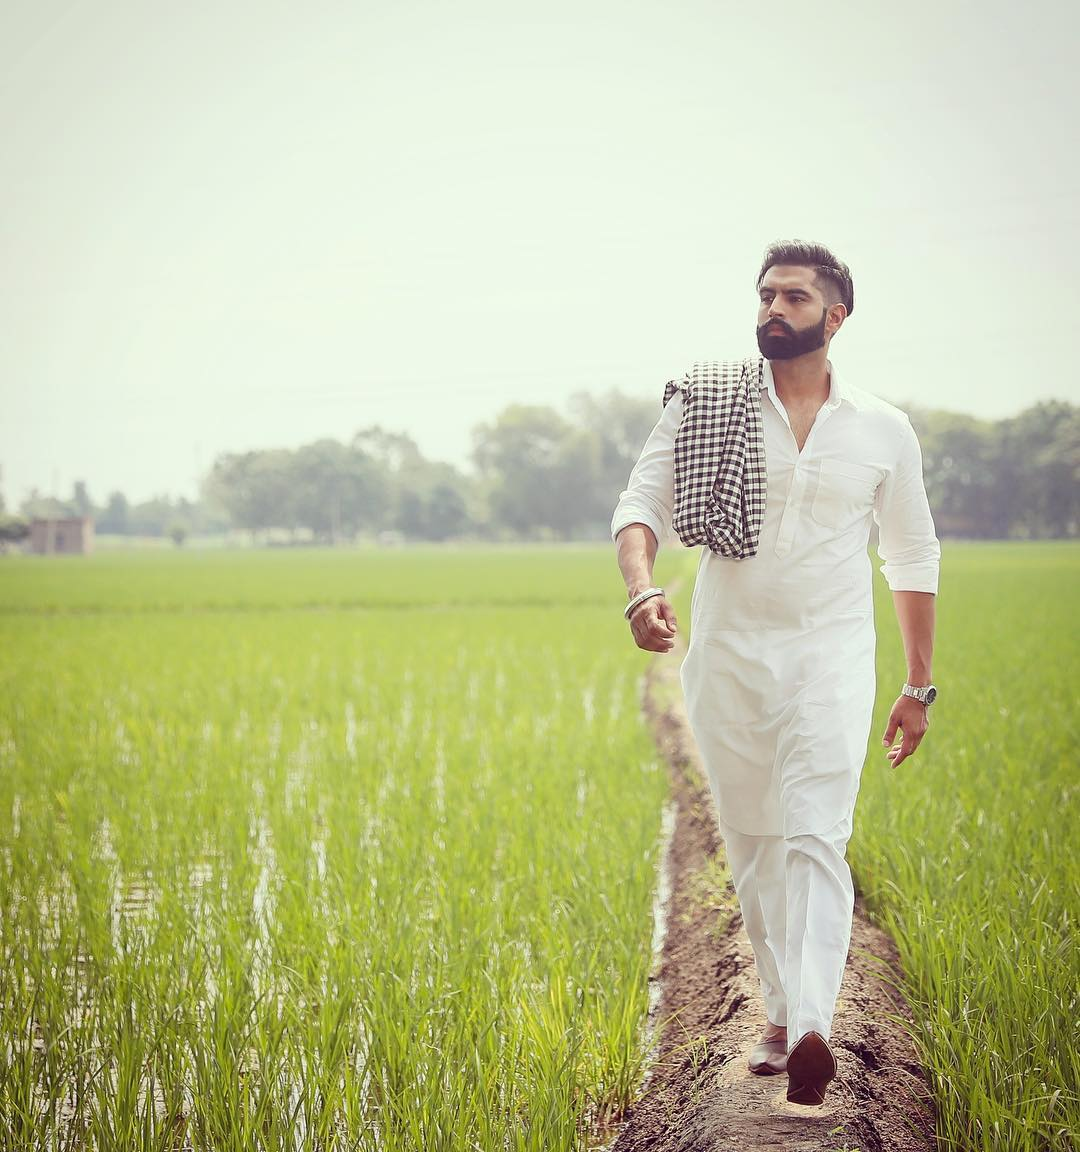 Parmish Verma hd Picture in Kurta Pajama Look